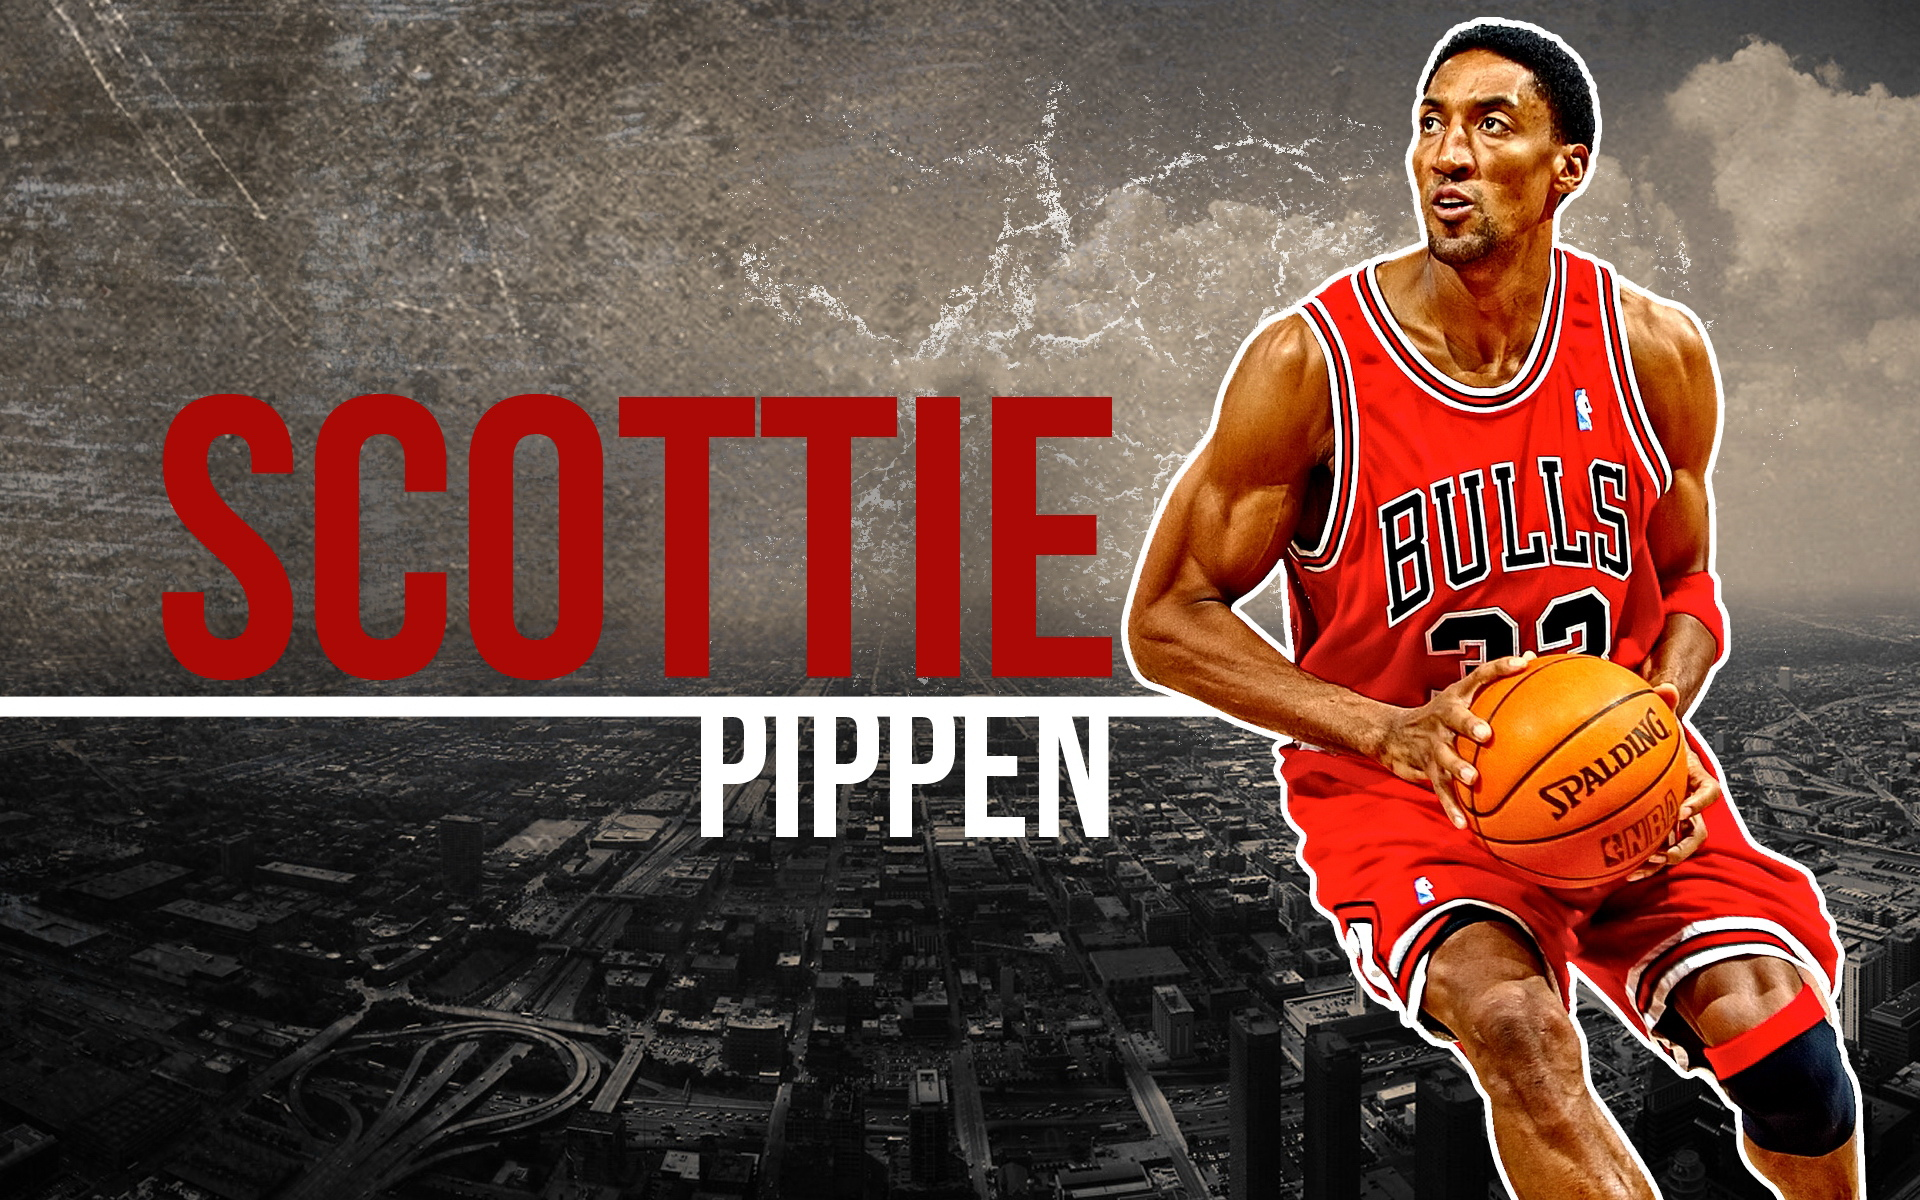 Scottie Pippen HD Wallpapers